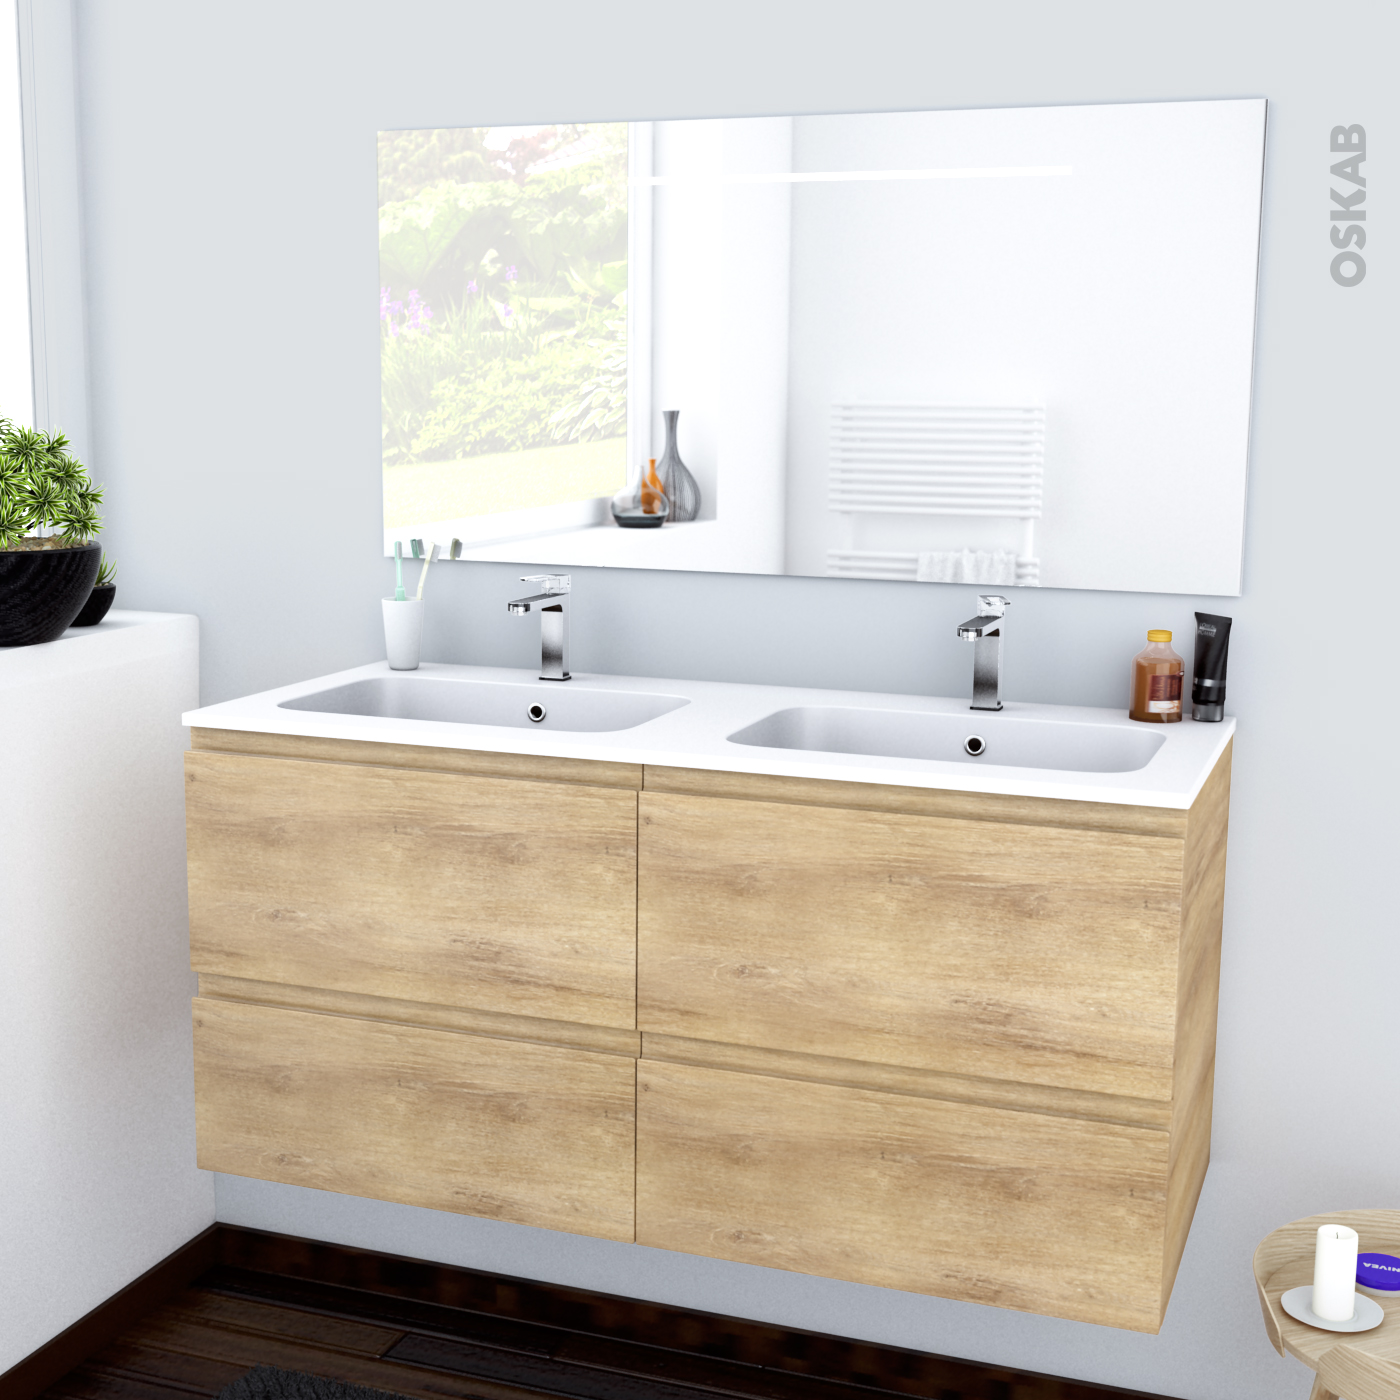 Lavabo double vasque retro hudson reed ensemble meuble de for Meuble double vasque bois